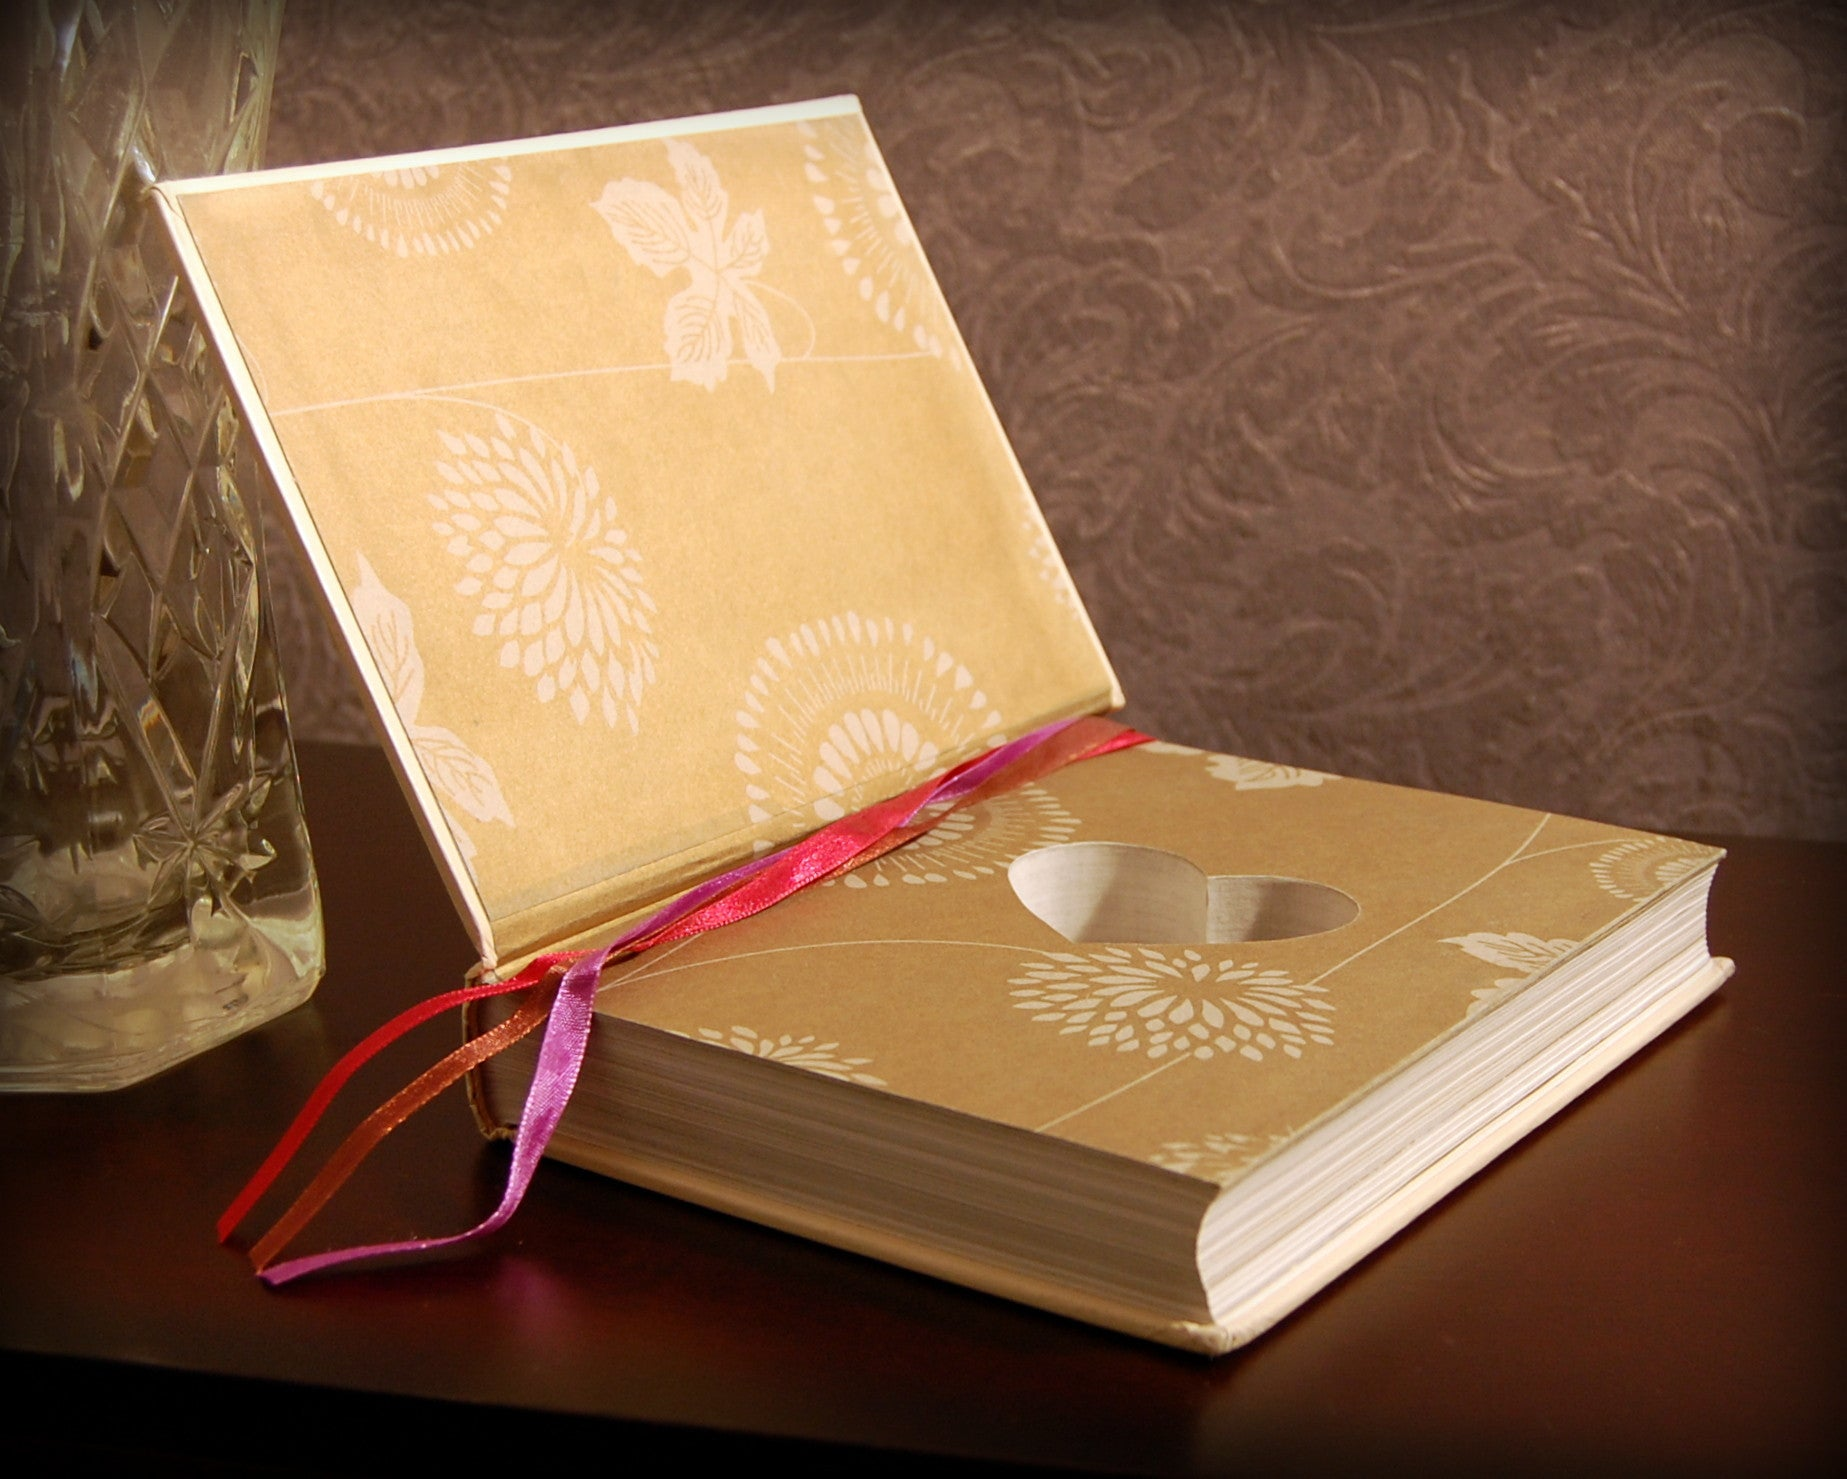 Wedding Vows & Traditions (Shabby Chic) / Howes - hollow book safe